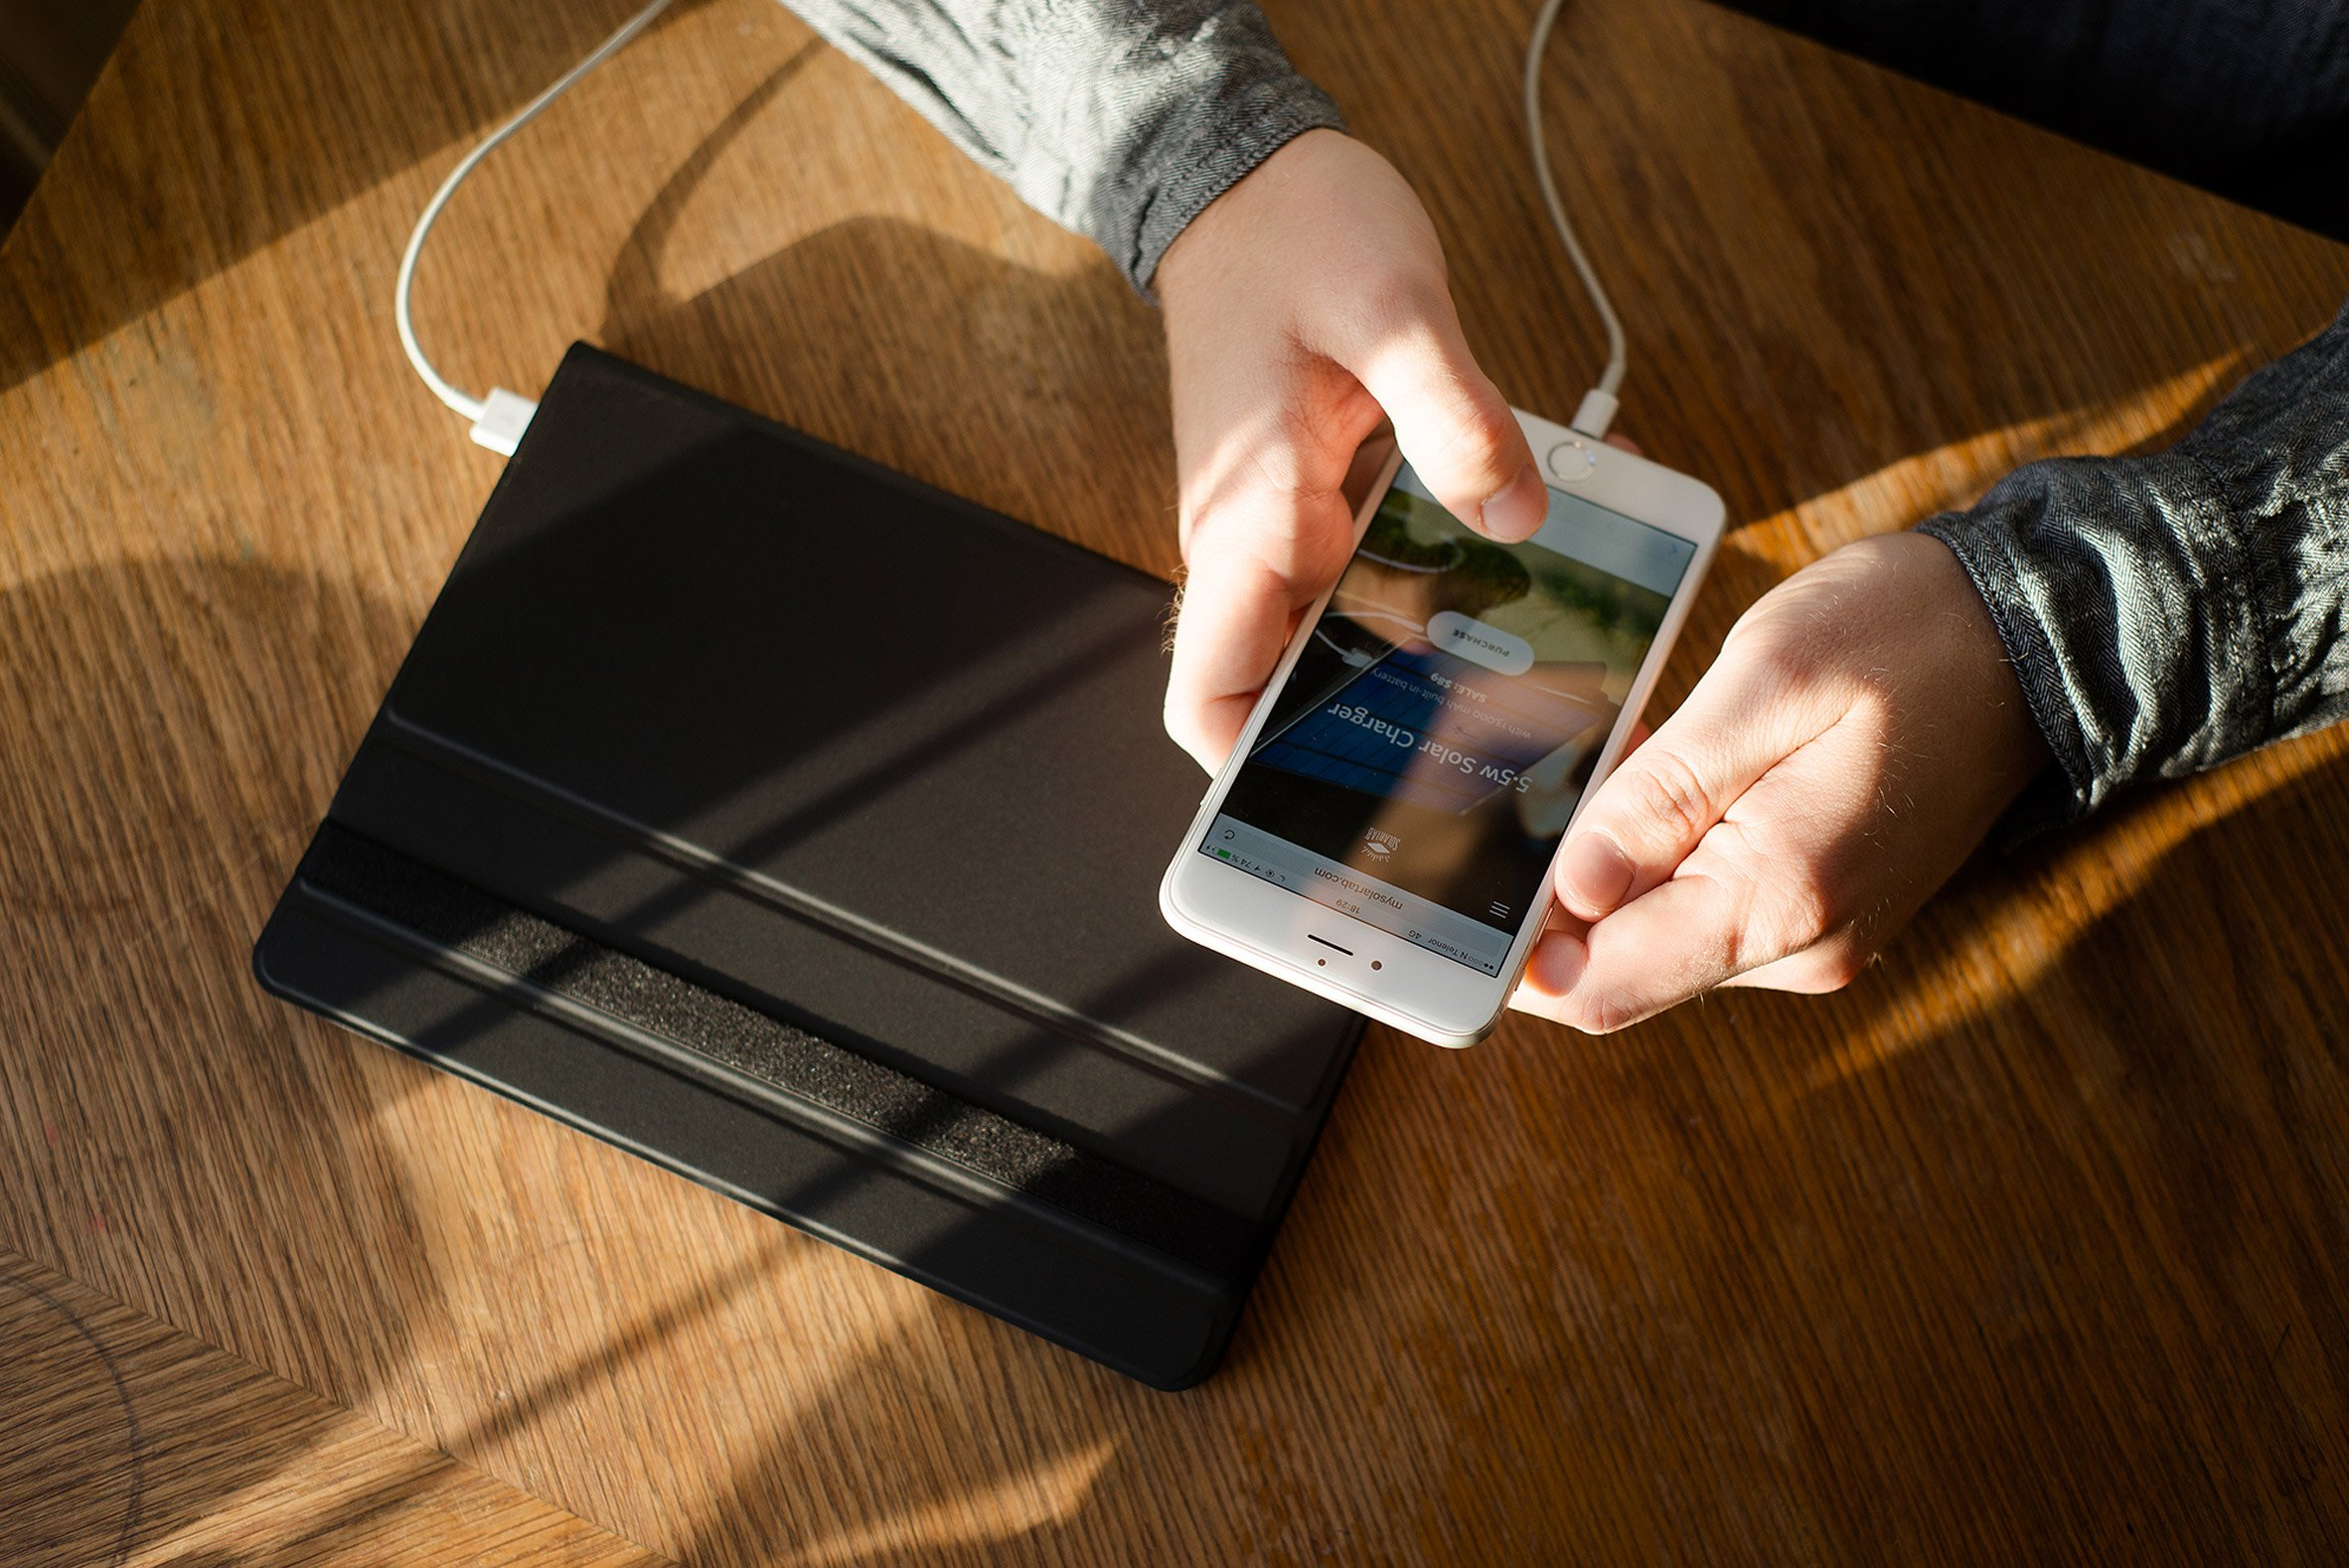 Portable Solartab C charger uses sunshine to keep laptops powered on the go